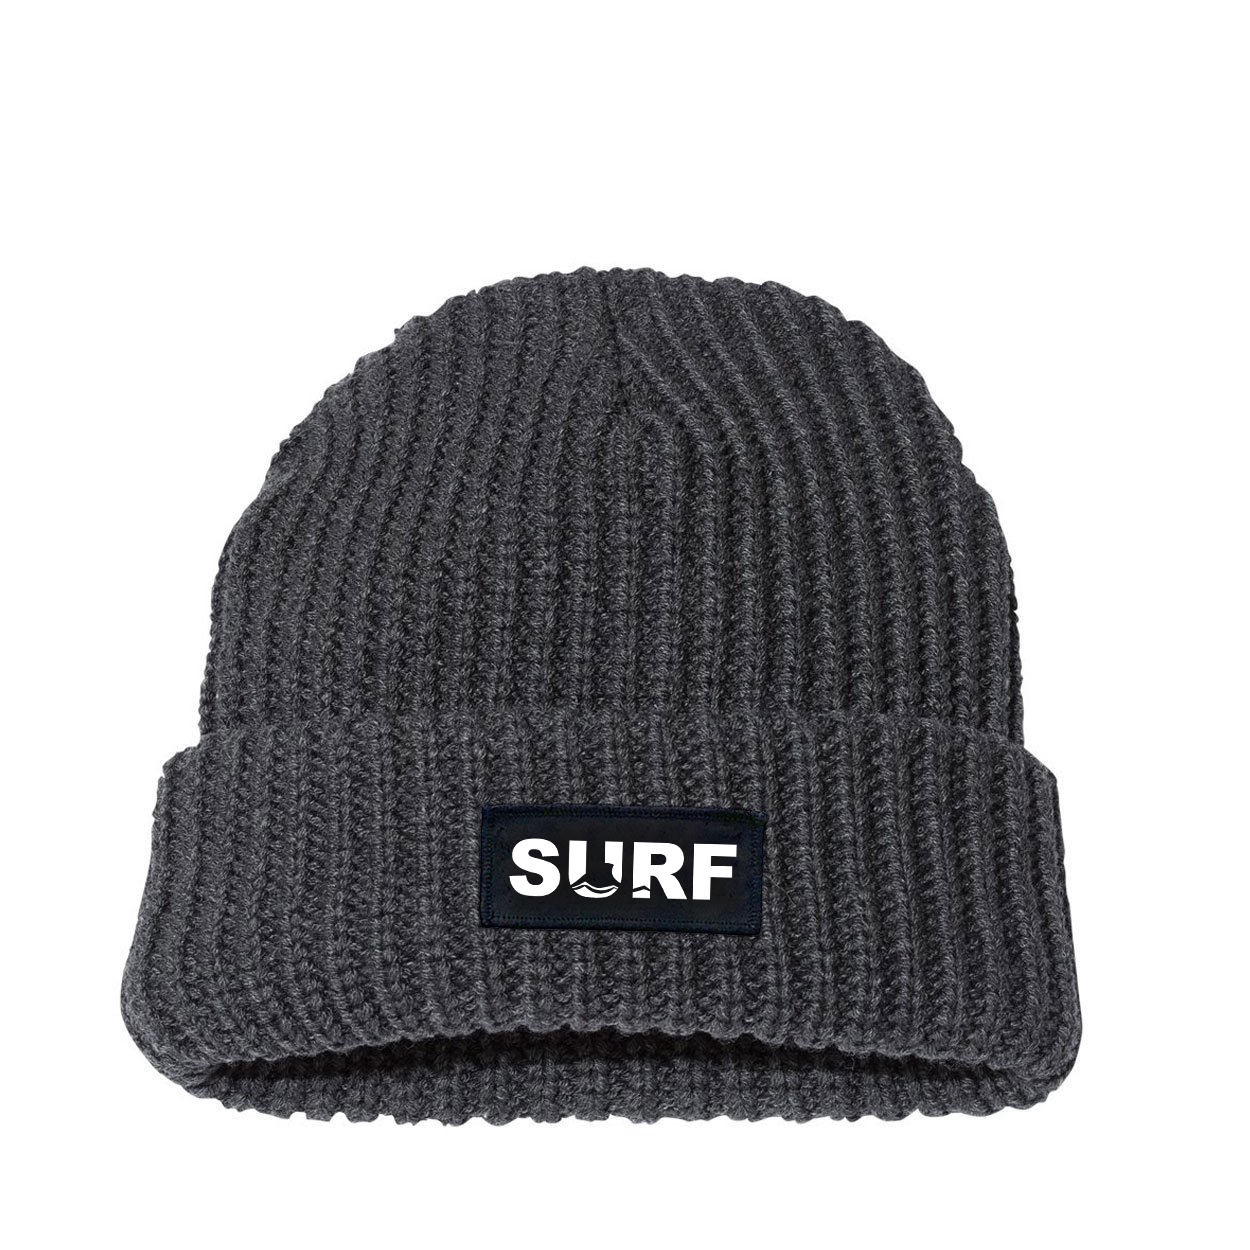 Surf Wave Logo Night Out Woven Patch Roll Up Jumbo Chunky Knit Beanie Charcoal (White Logo)